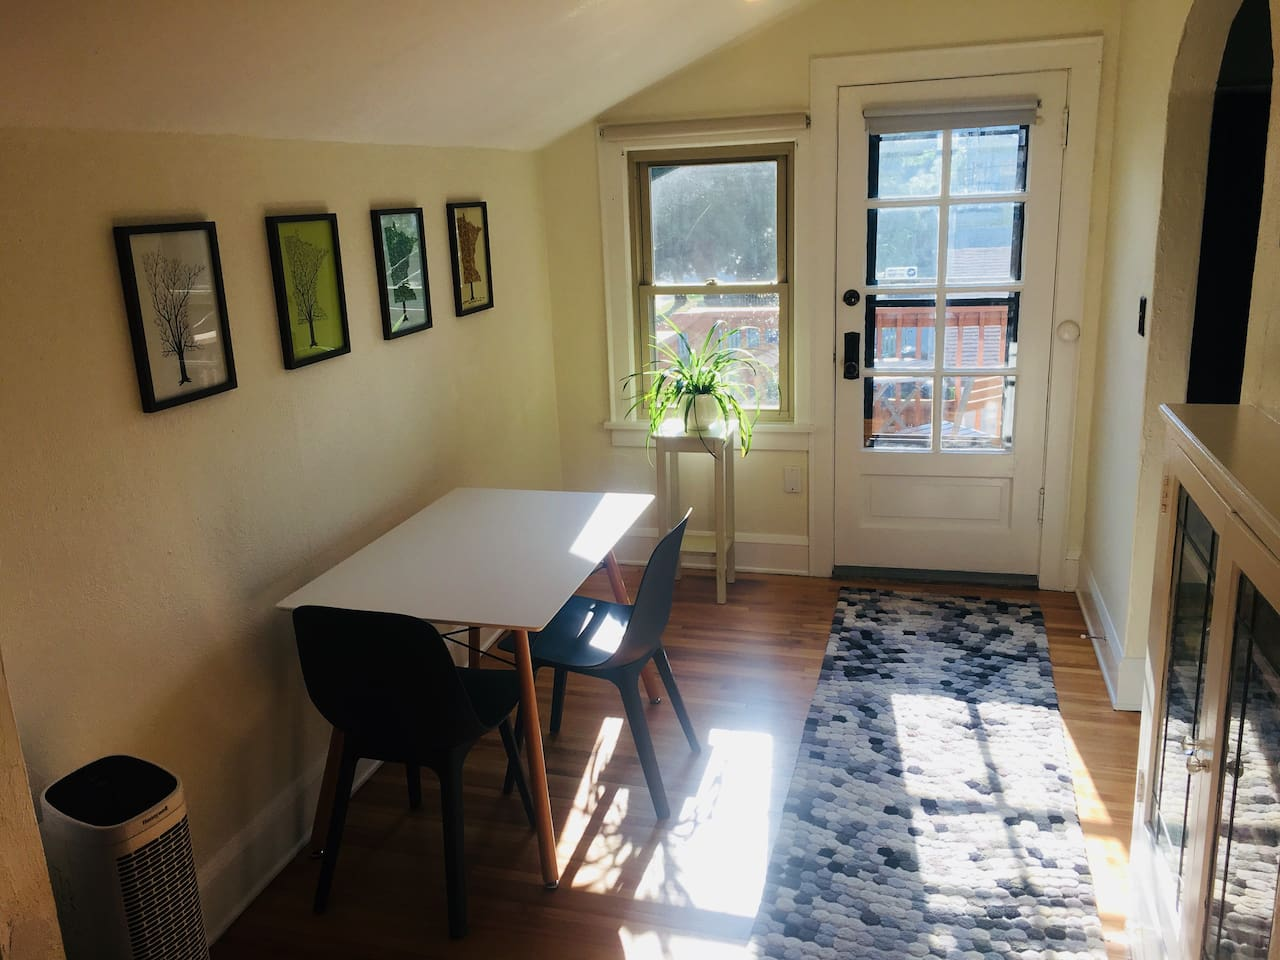 Sun-filled entryway with dining table / desk